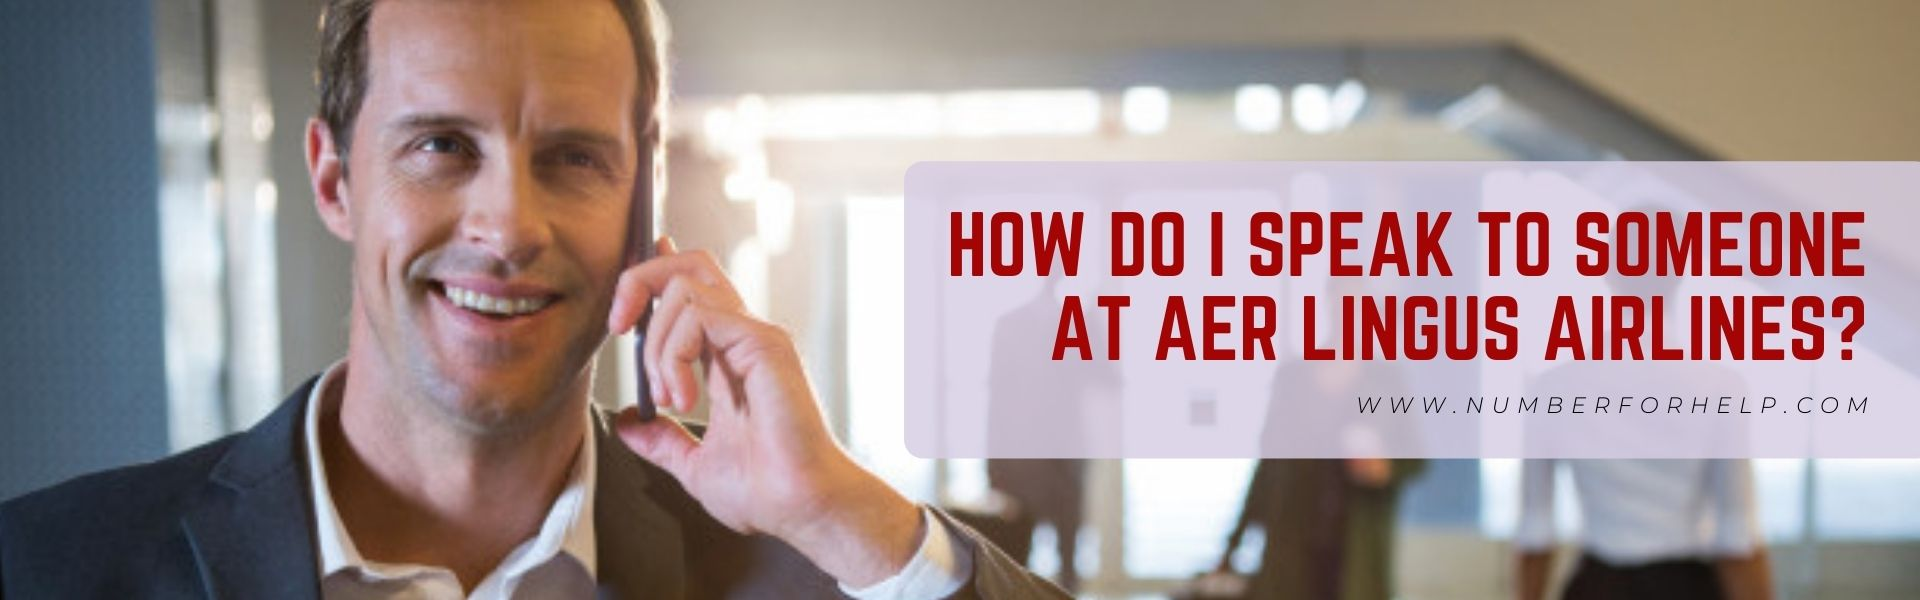 2020-10-19-10-29-39How do I speak to someone at Aer Lingus Airlines